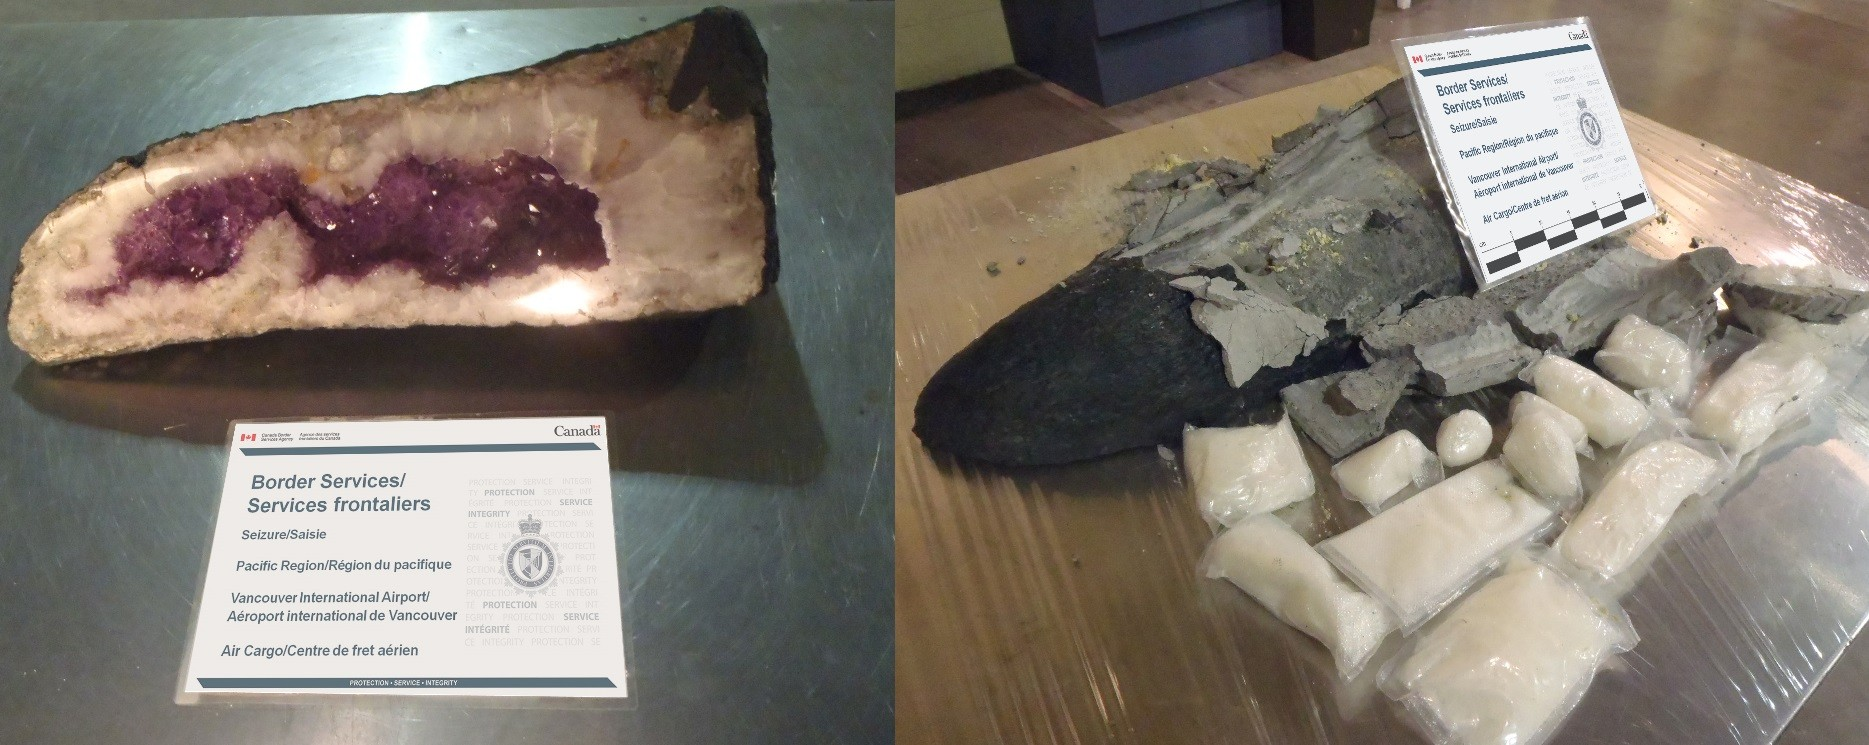 This supposed amethyst was found to contain methamphetamine (CBSA)